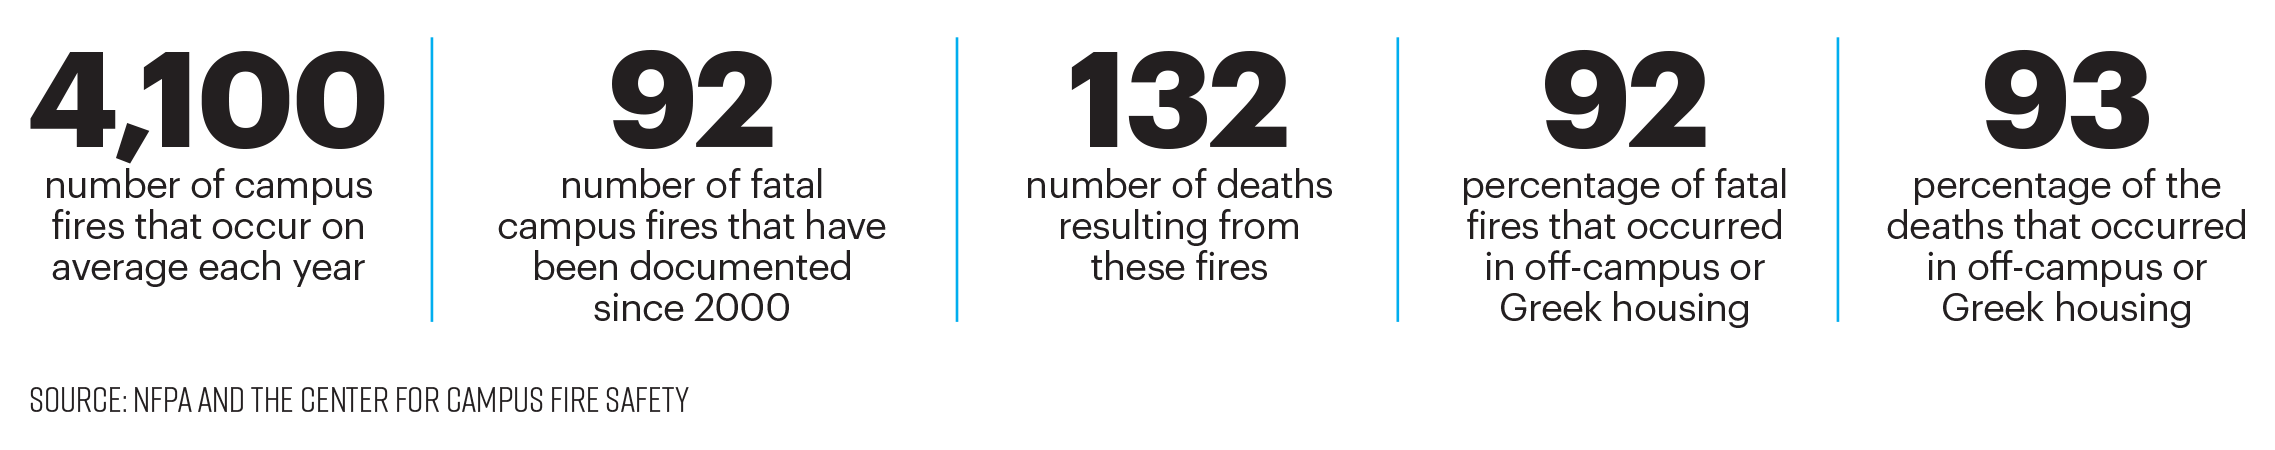 Statistics on the number of off-campus house fires in the U.S.